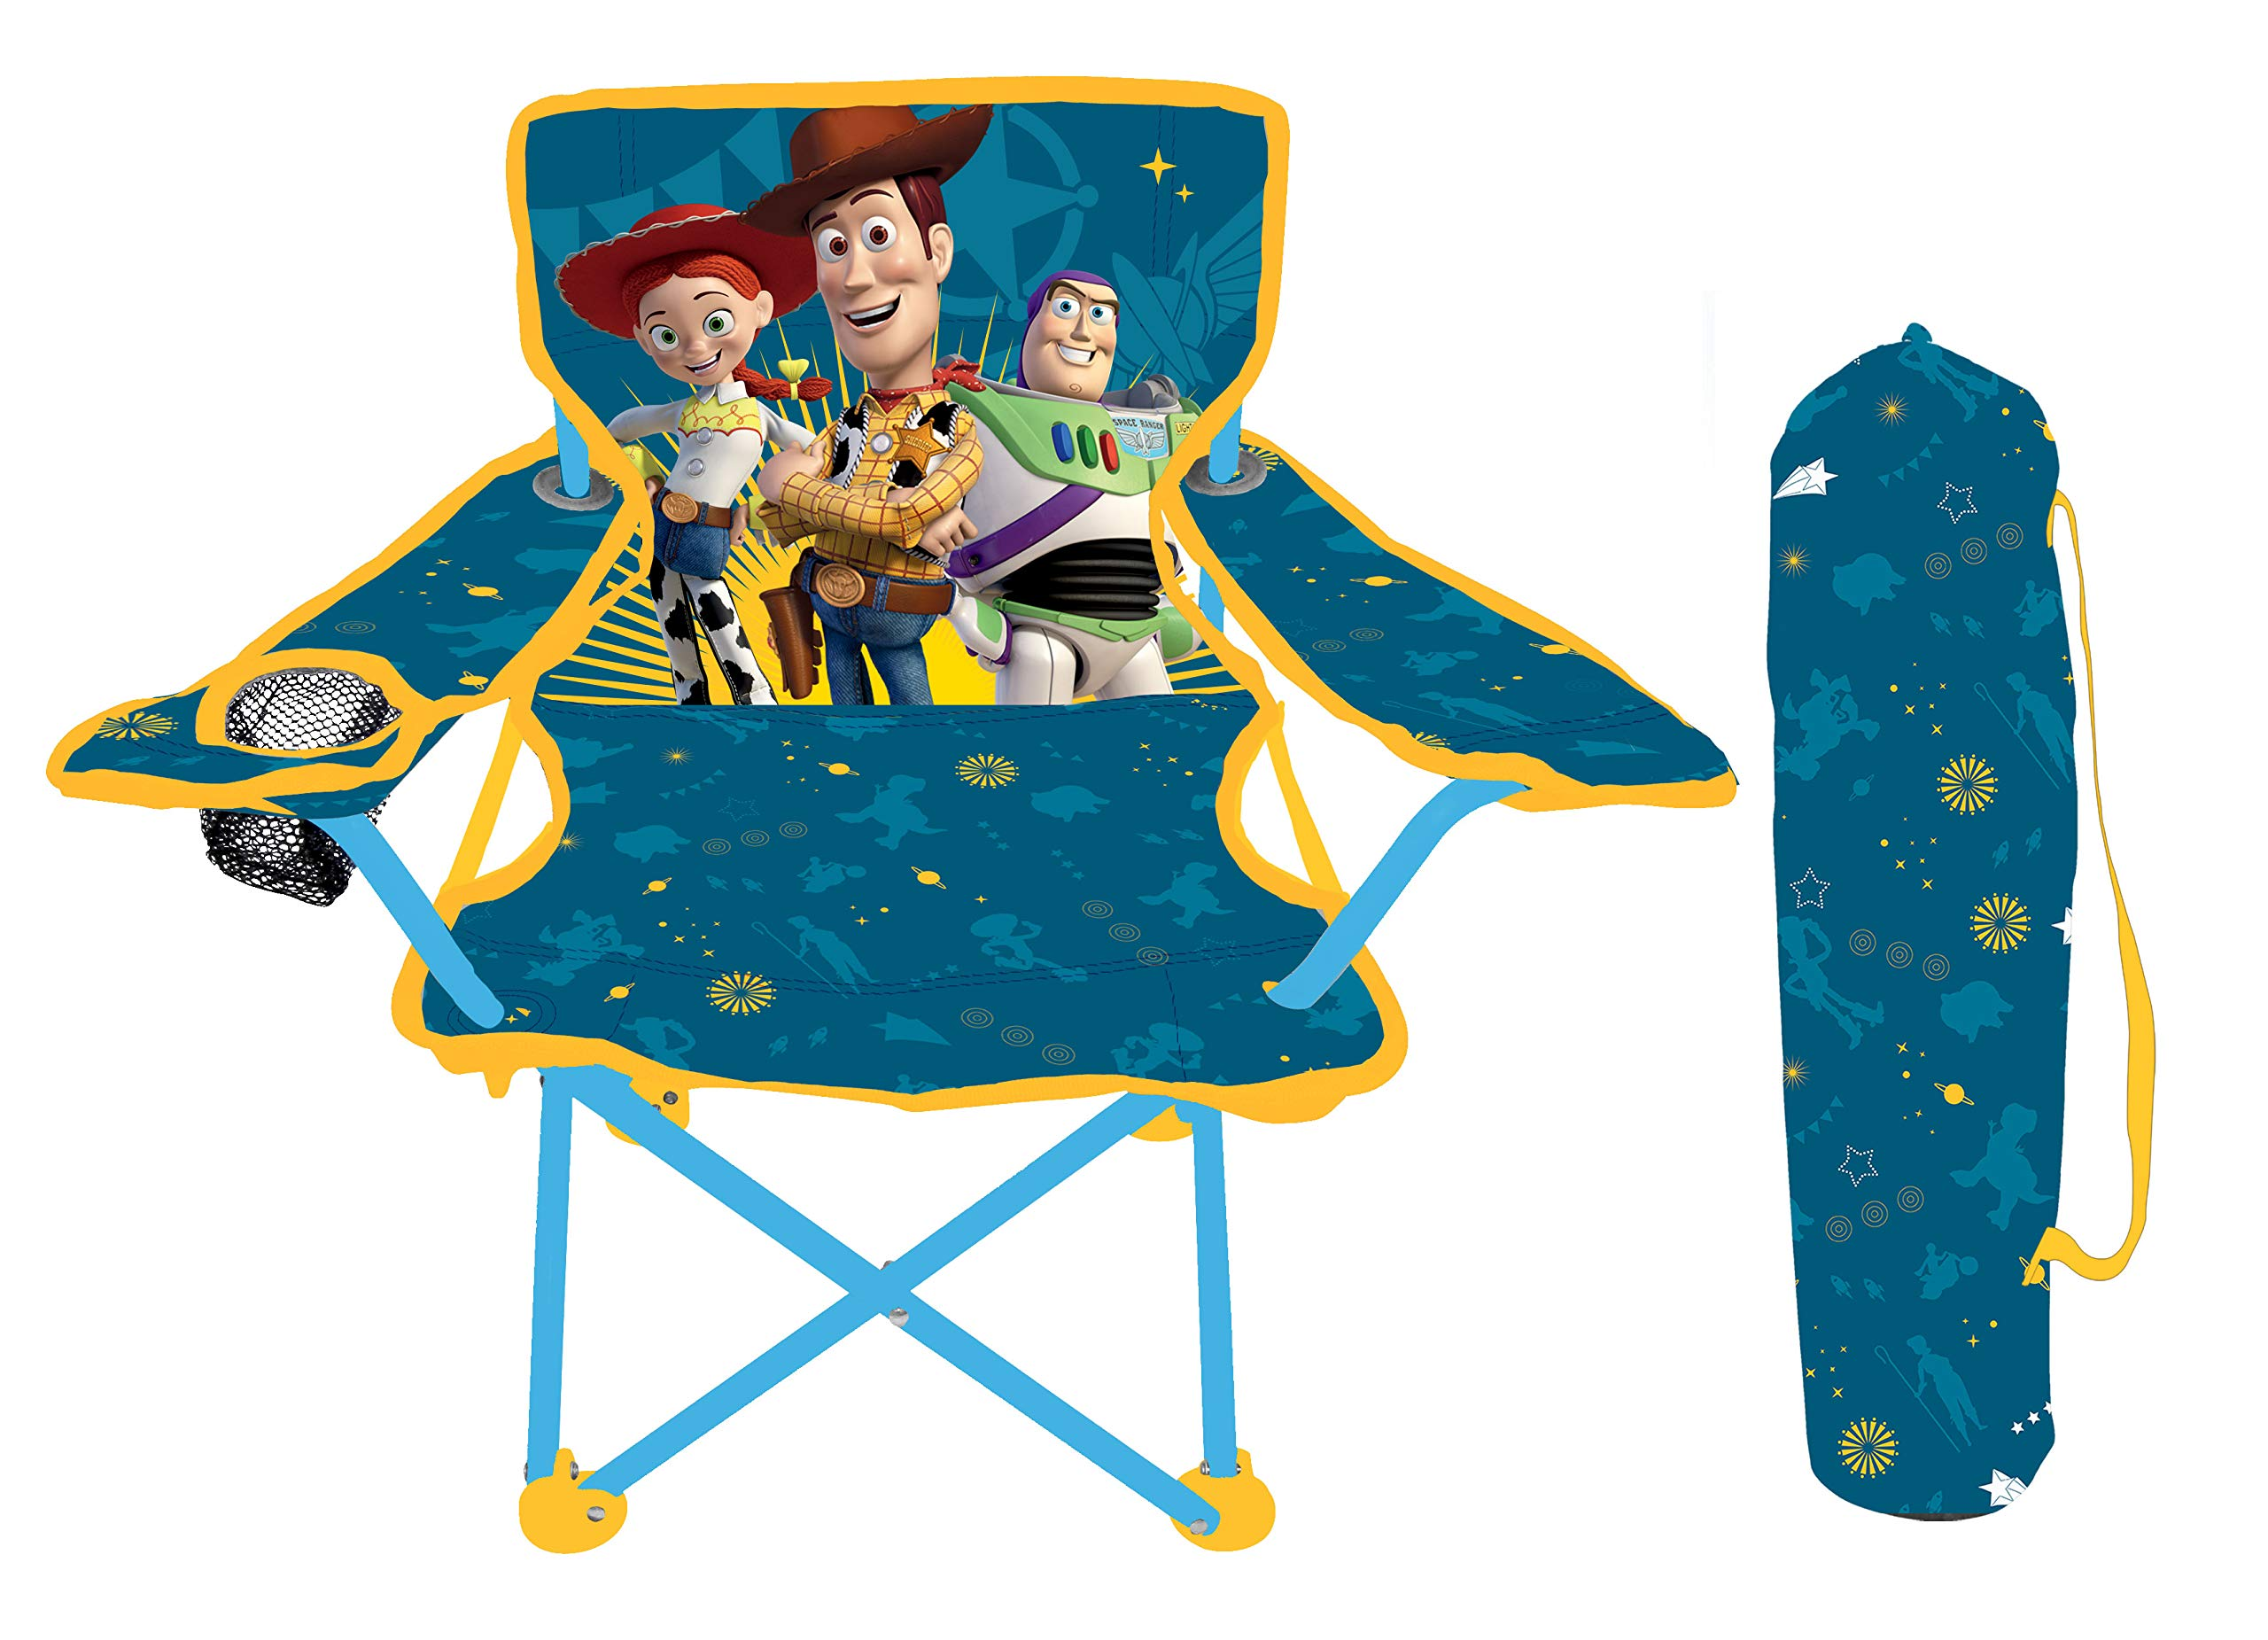 Jakks Pacific Toy Story 4 Camp Chair for Kids, Portable Camping Fold N Go Chair with Carry Bag by Jakks Pacific (Image #3)